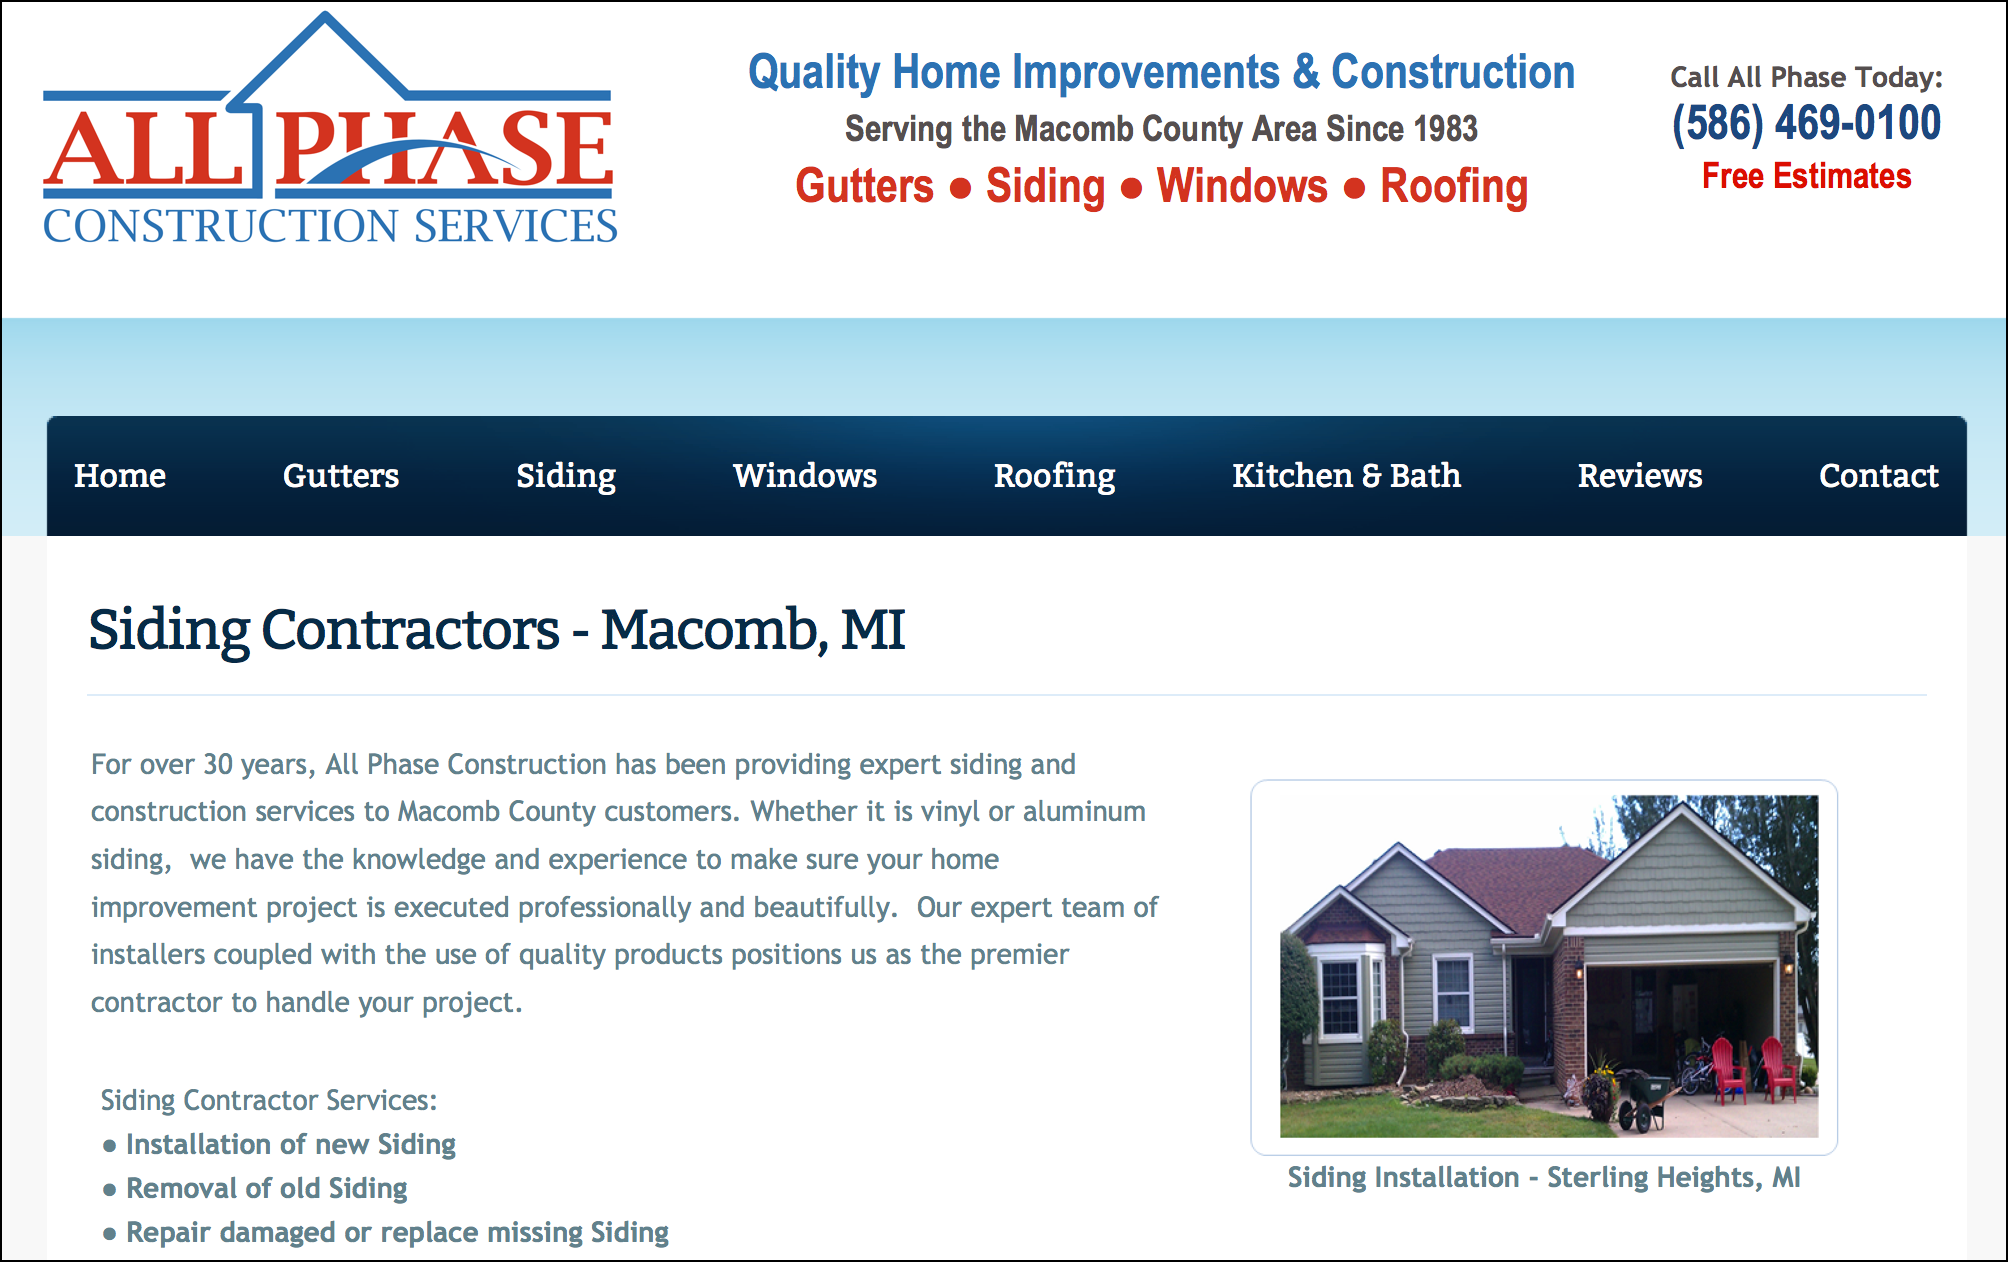 All Phase Construction Services Website – Macomb County, MI